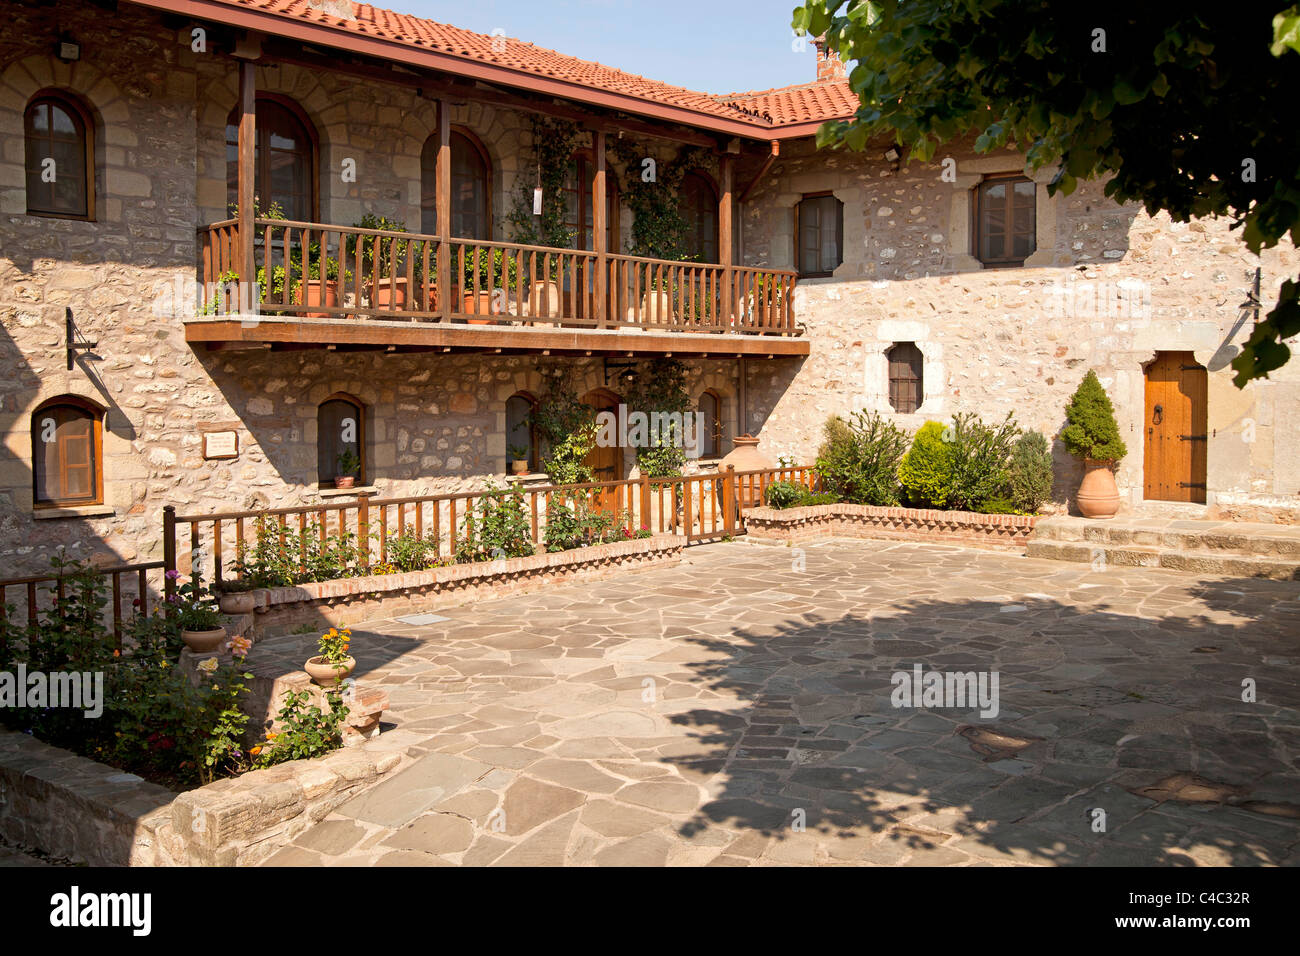 Courtyard of the Holy Monastery of St. Stephen. Meteora complex of Eastern Orthodox monasteries, UNESCO World Heritage - Stock Image